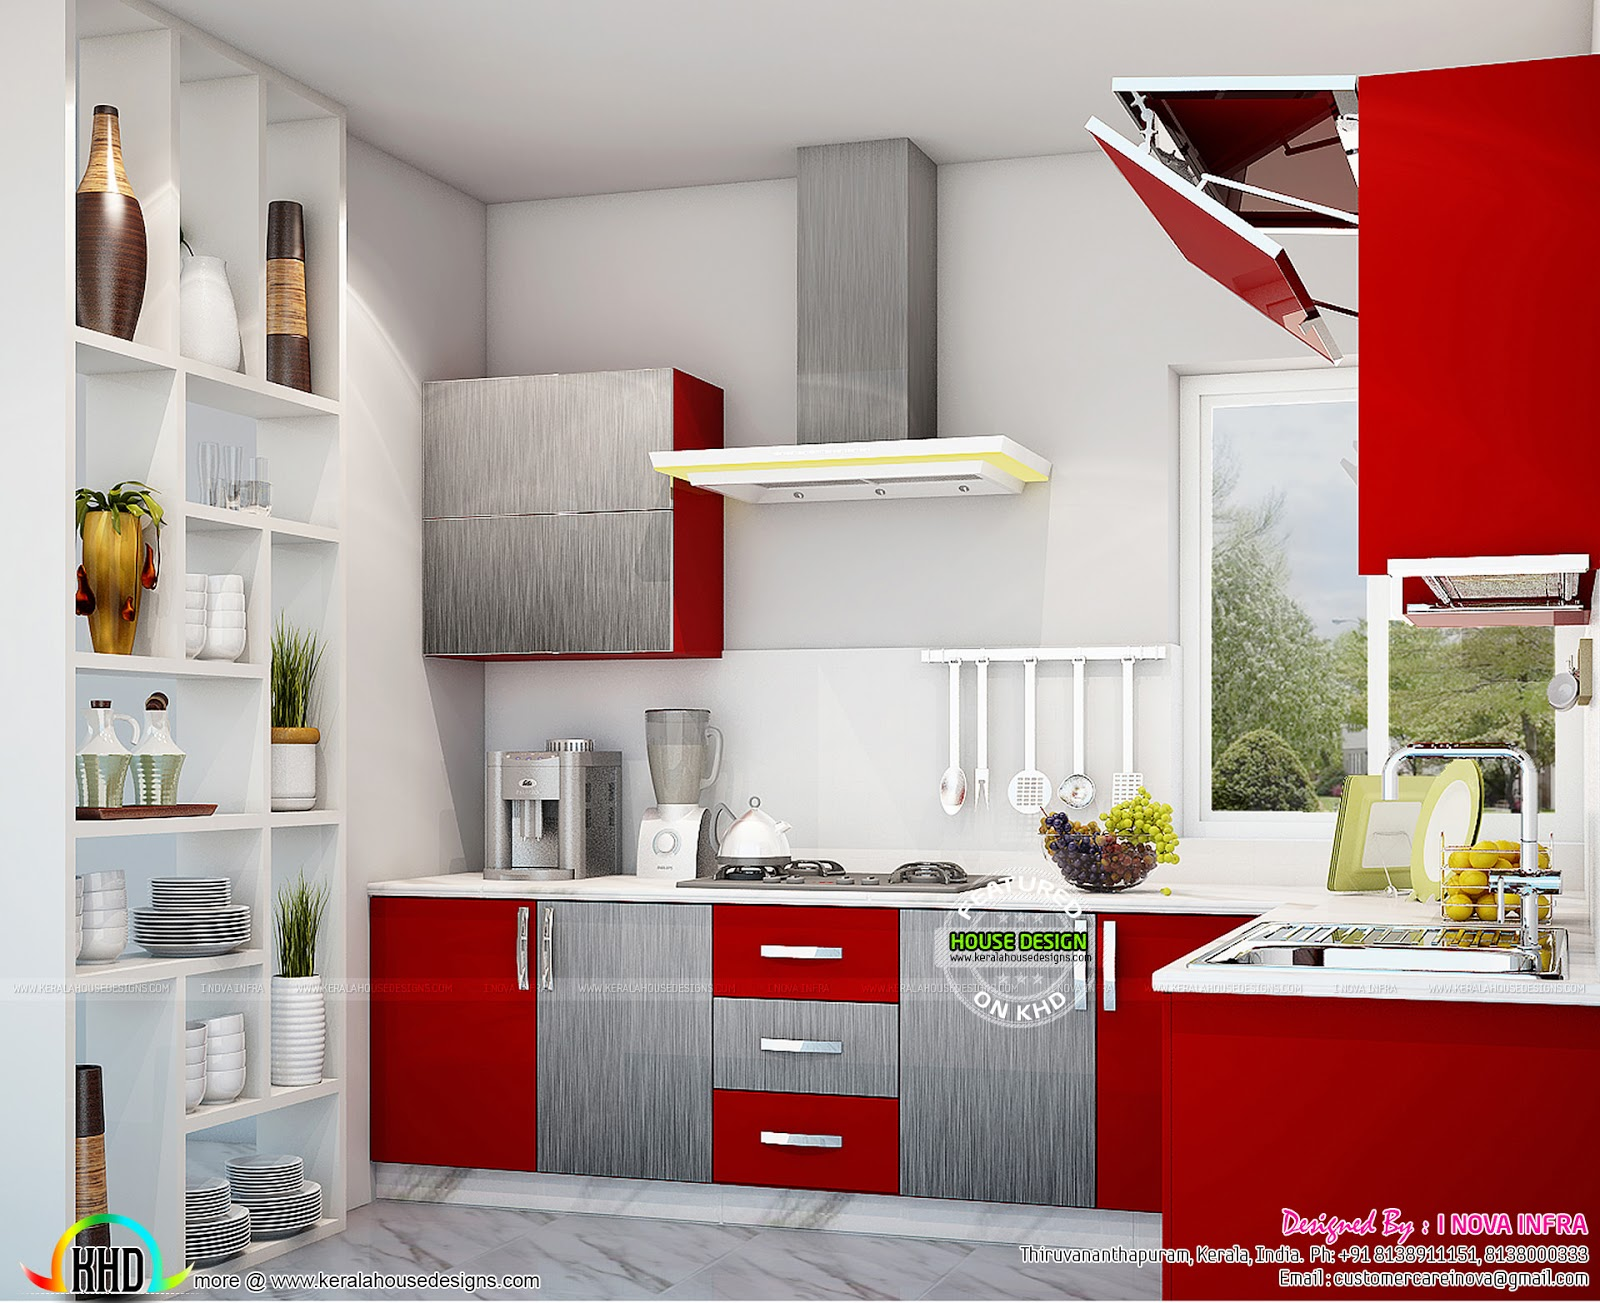 Kitchen interior works at Trivandrum - Kerala home design ...